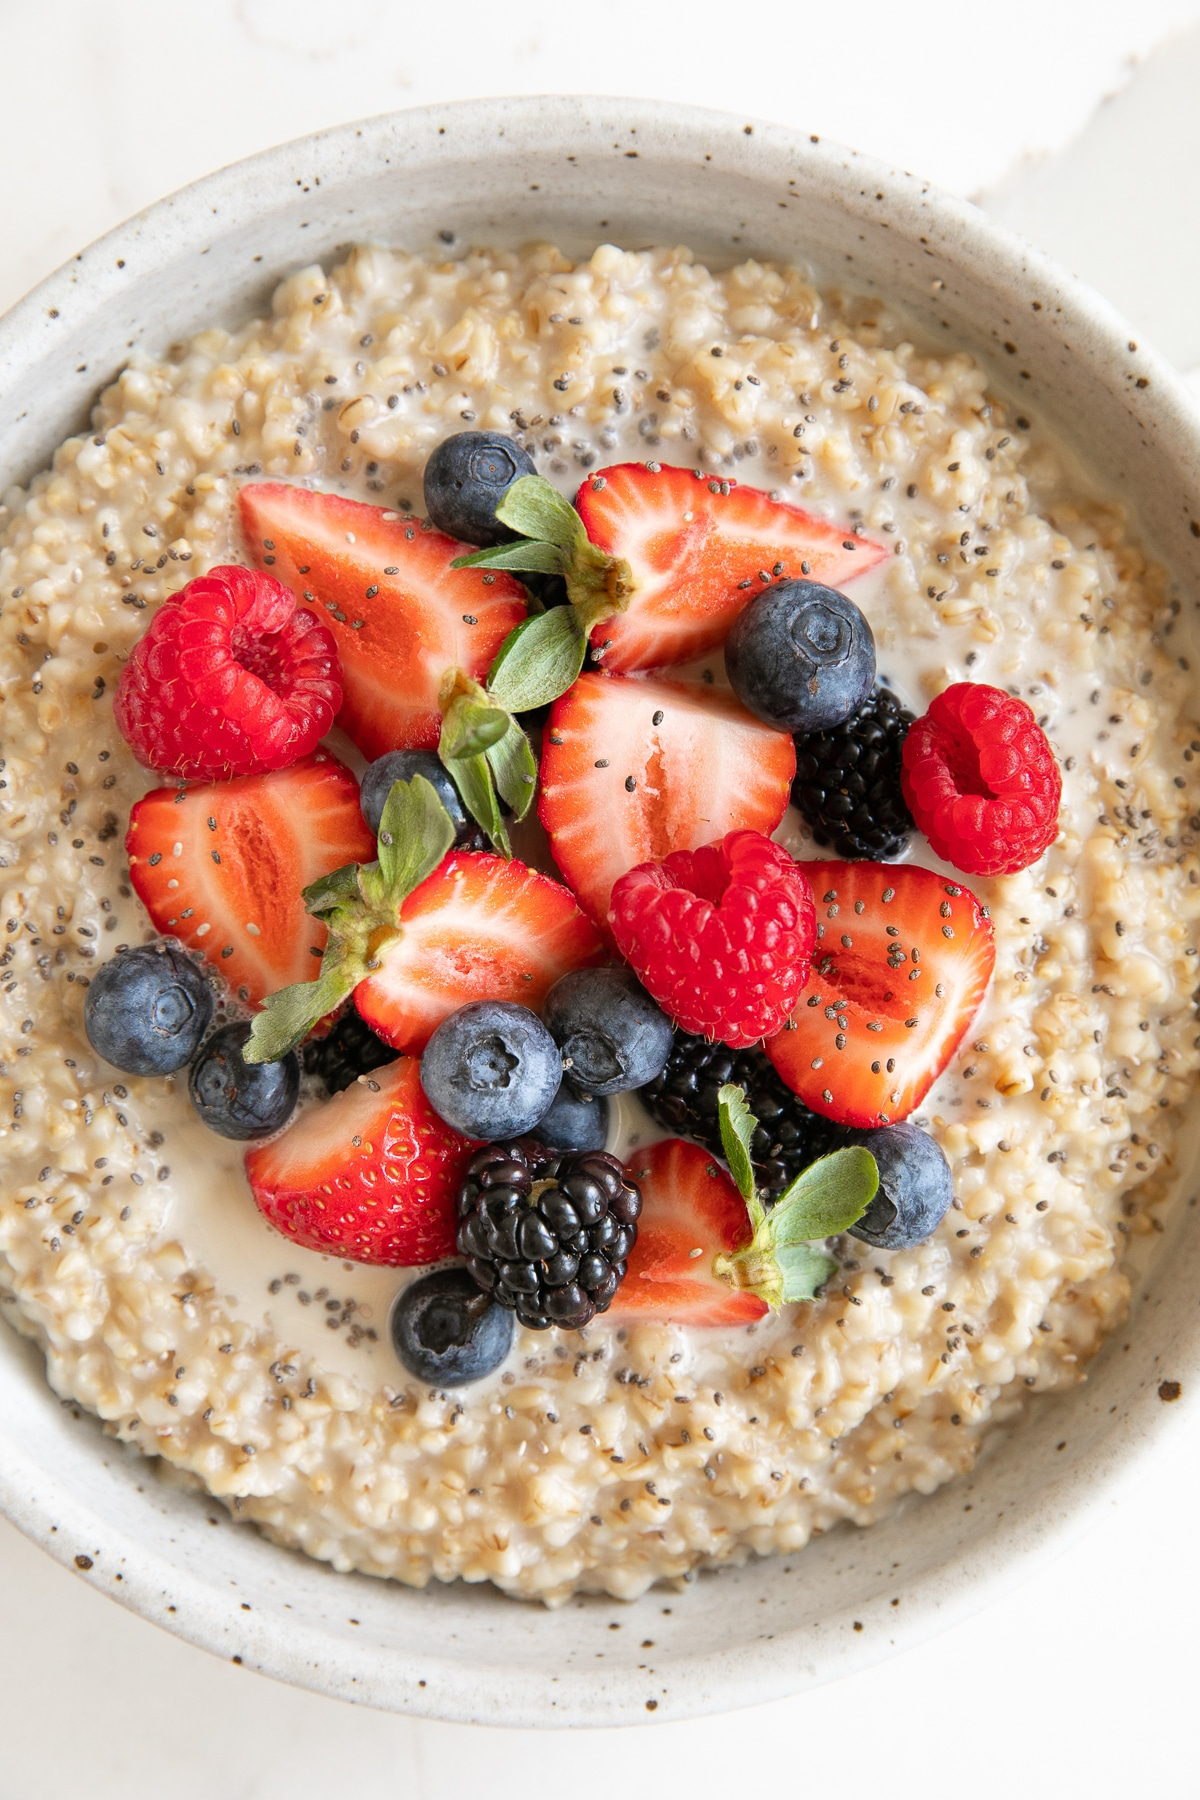 Large round shallow bowl filled with pressure cooker steel cut oatmeal topped with blueberries, raspberries, strawberries, blackberries, and chia seeds.